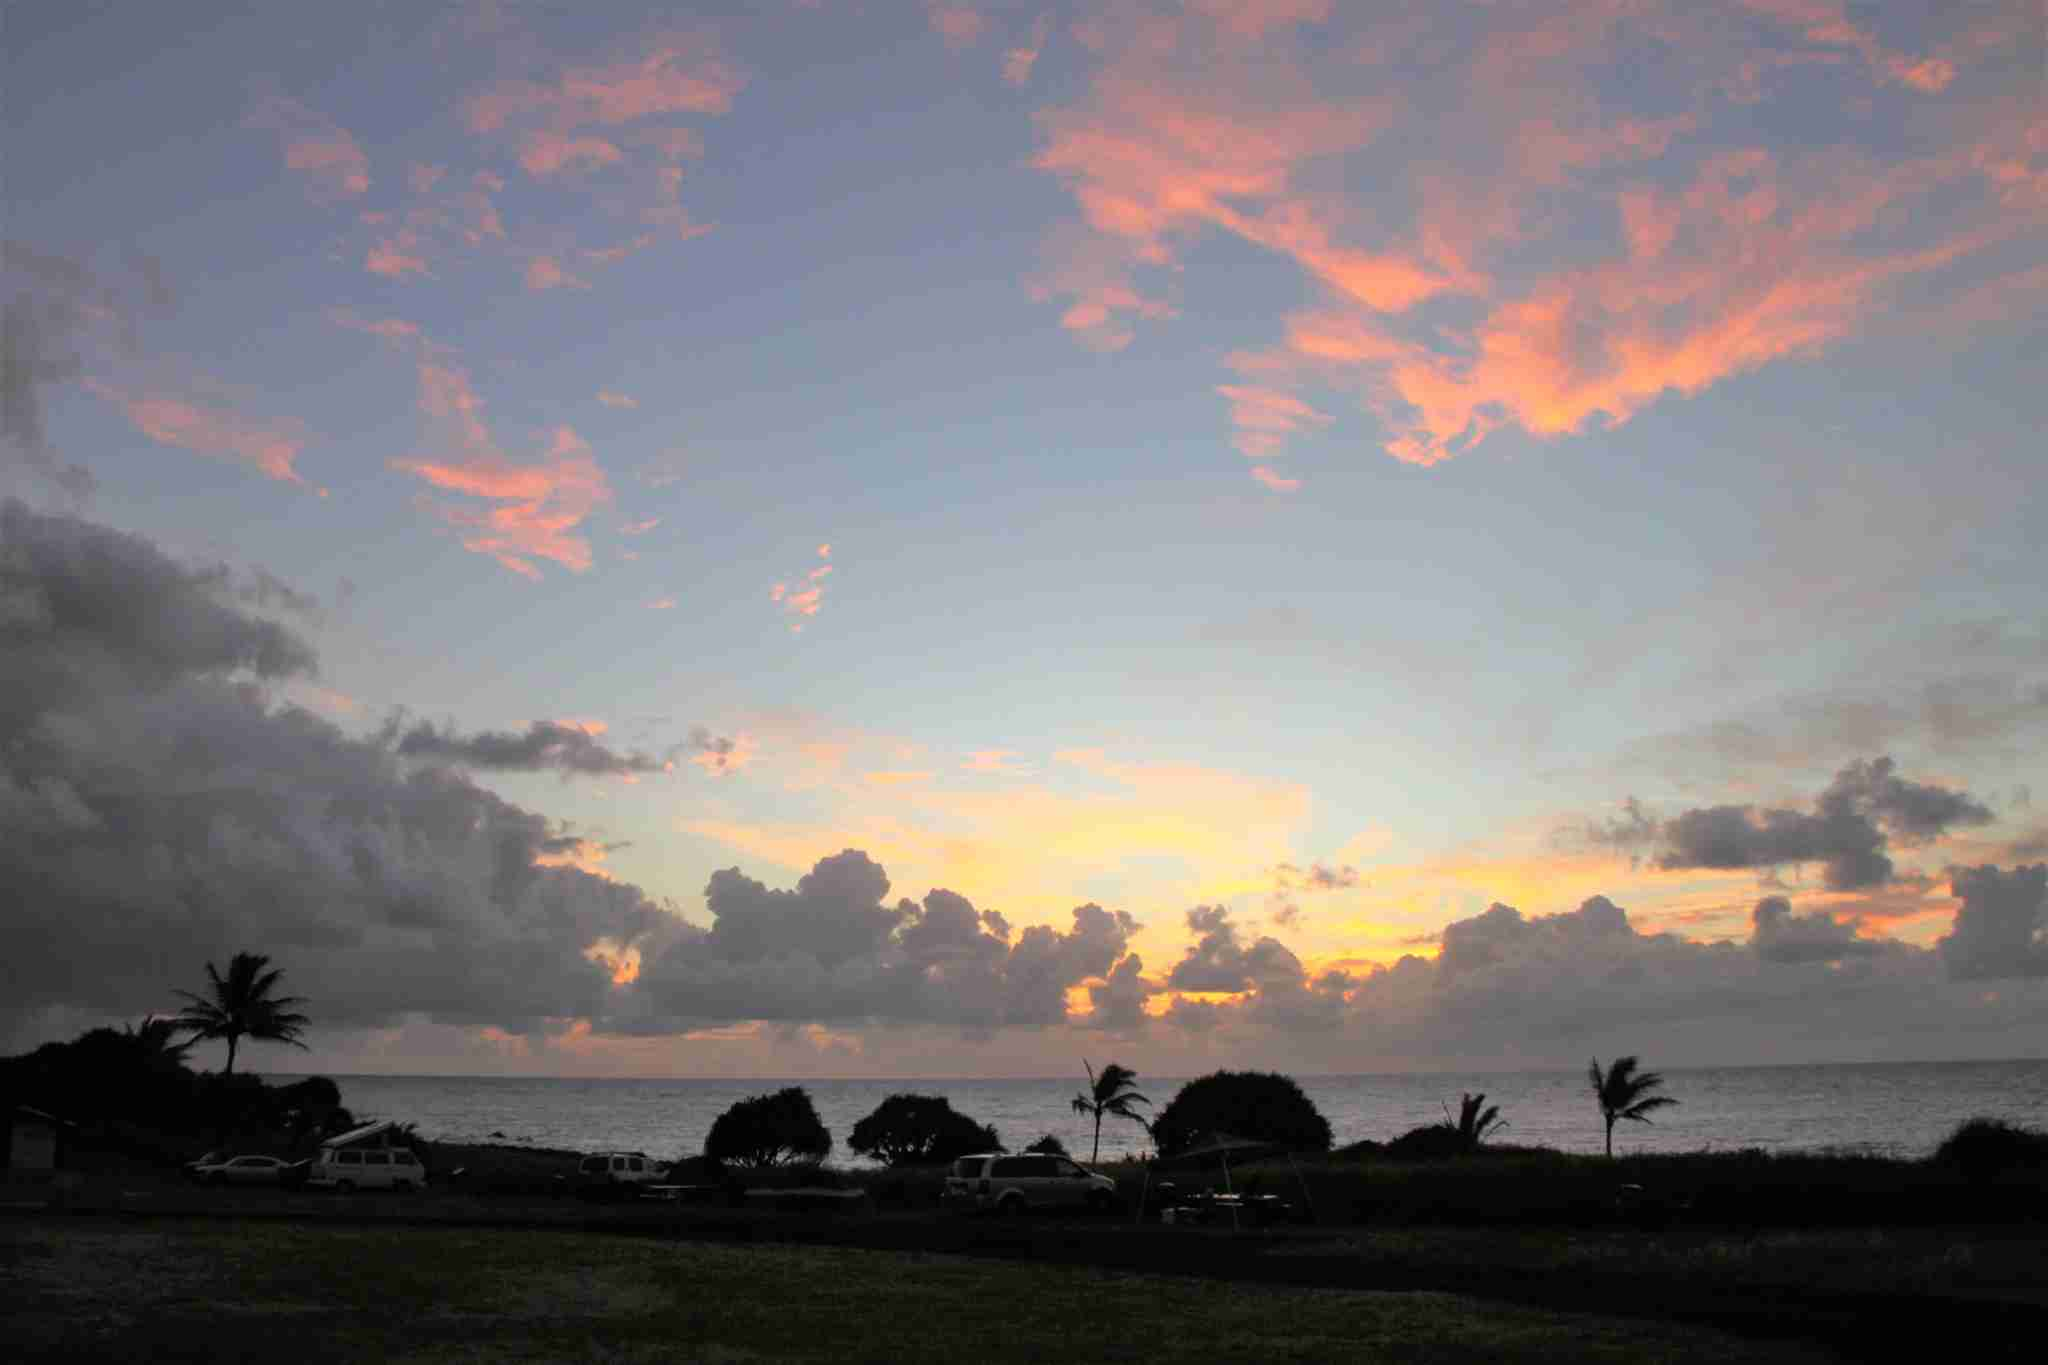 Kipahulu campground has amazing sunrise views on the ocean and is free with a National Park Pass!